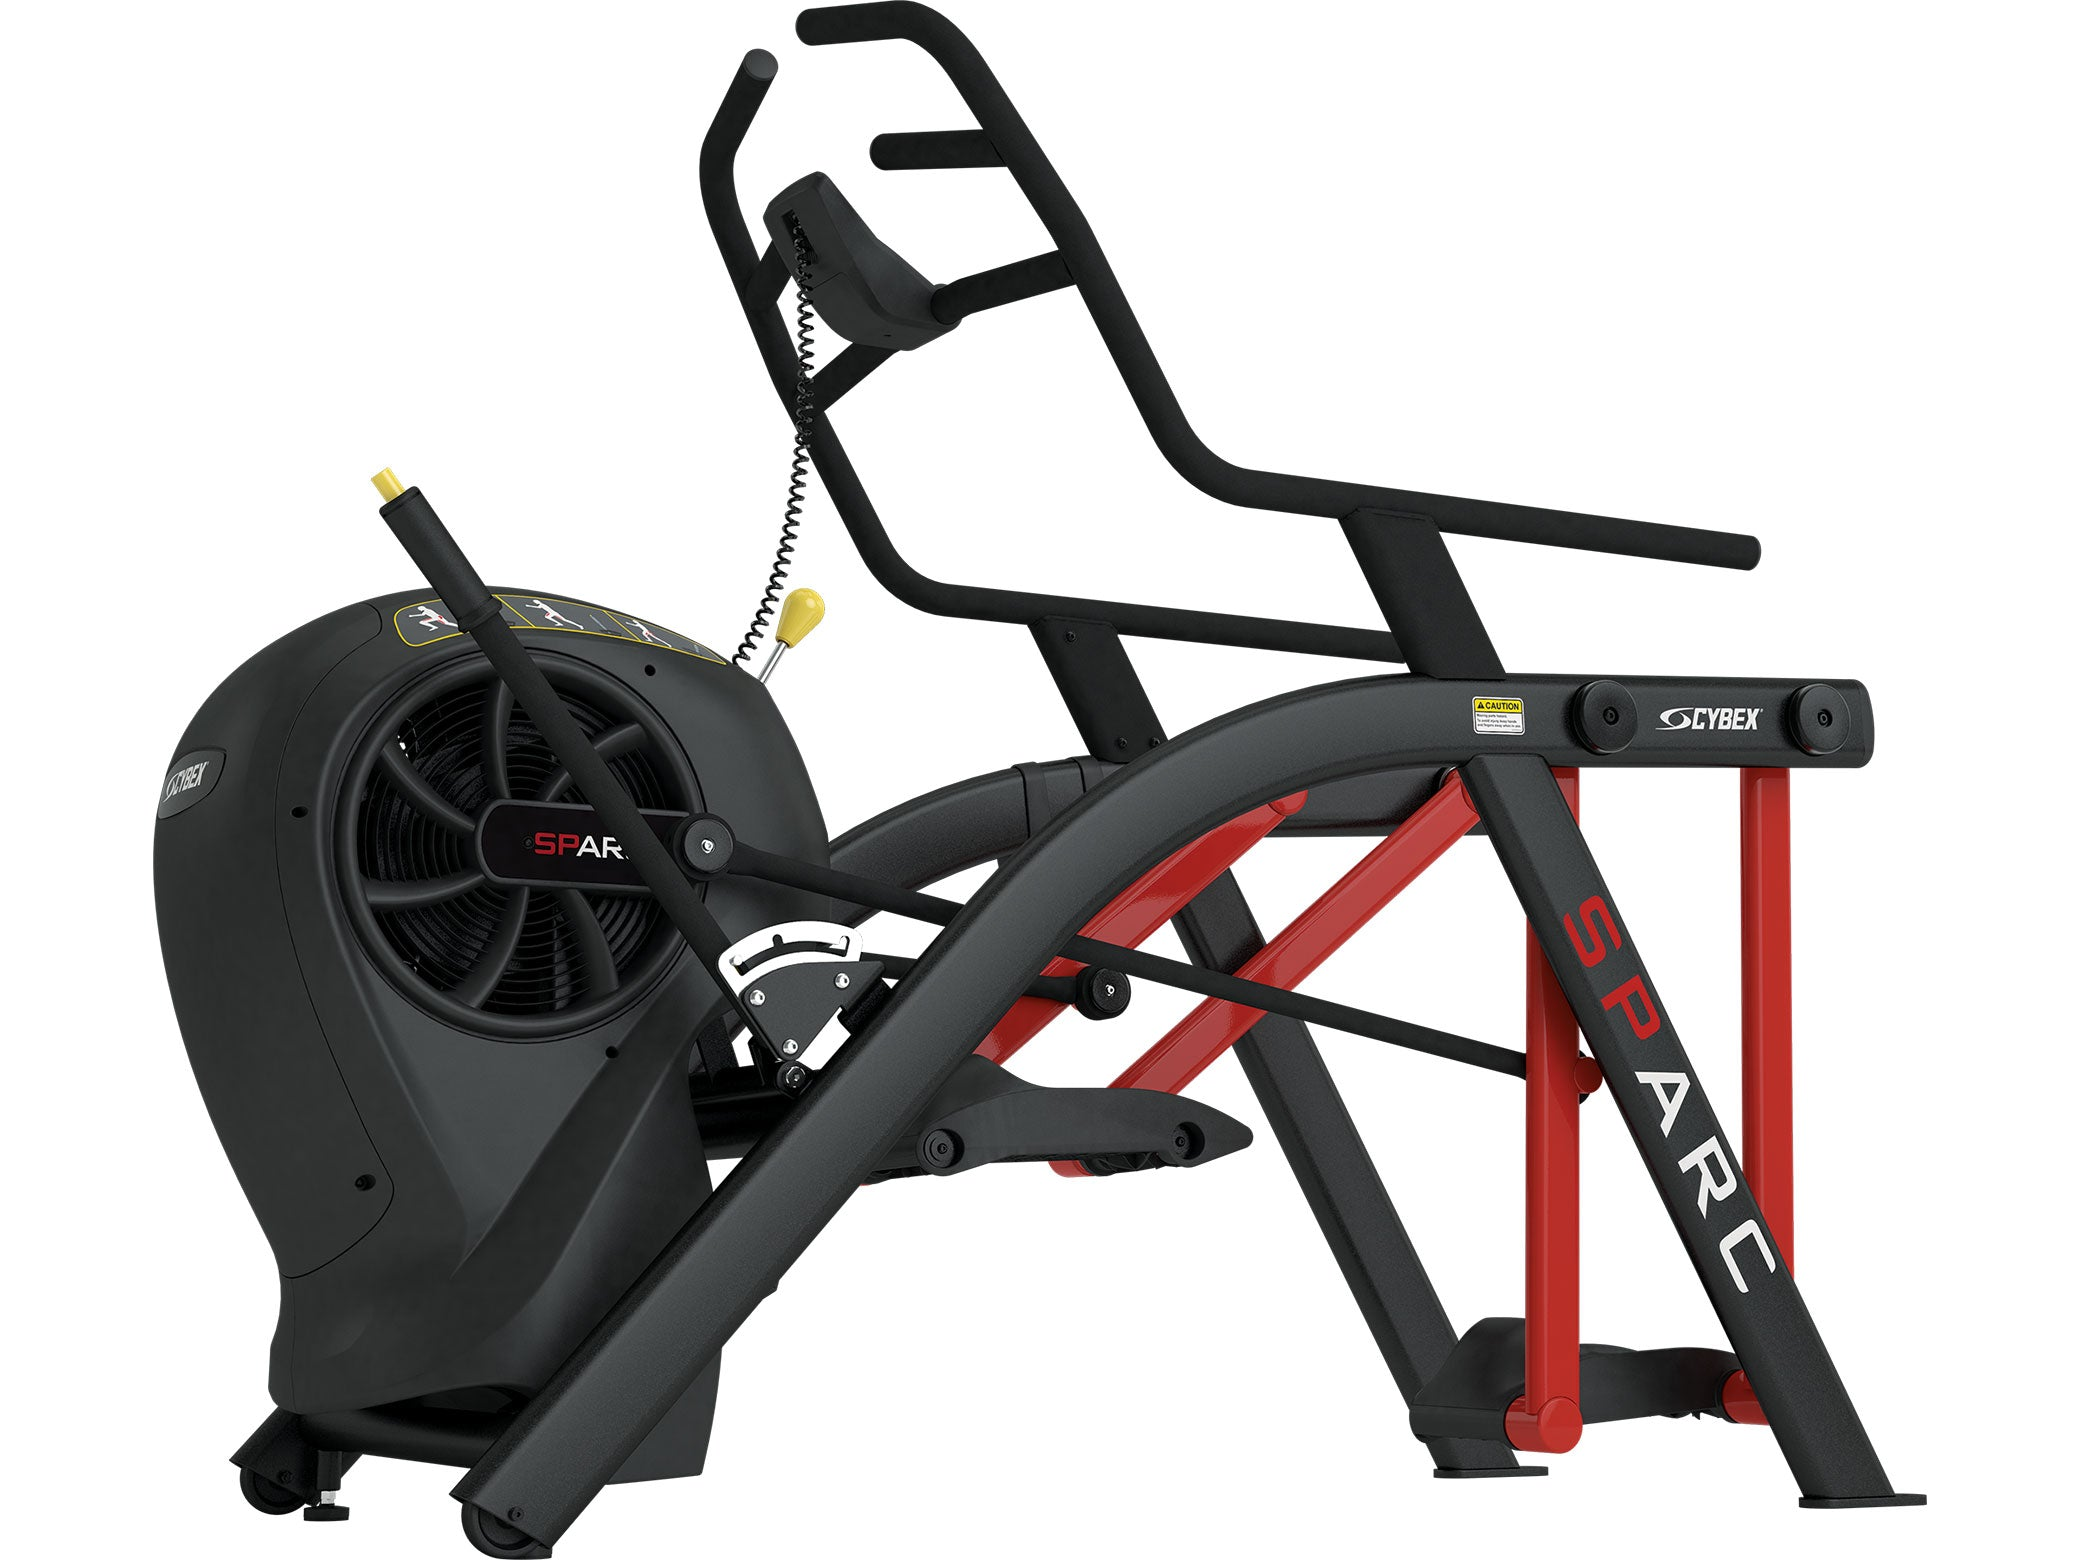 New Cybex Strength SPARC Arc Trainer Black